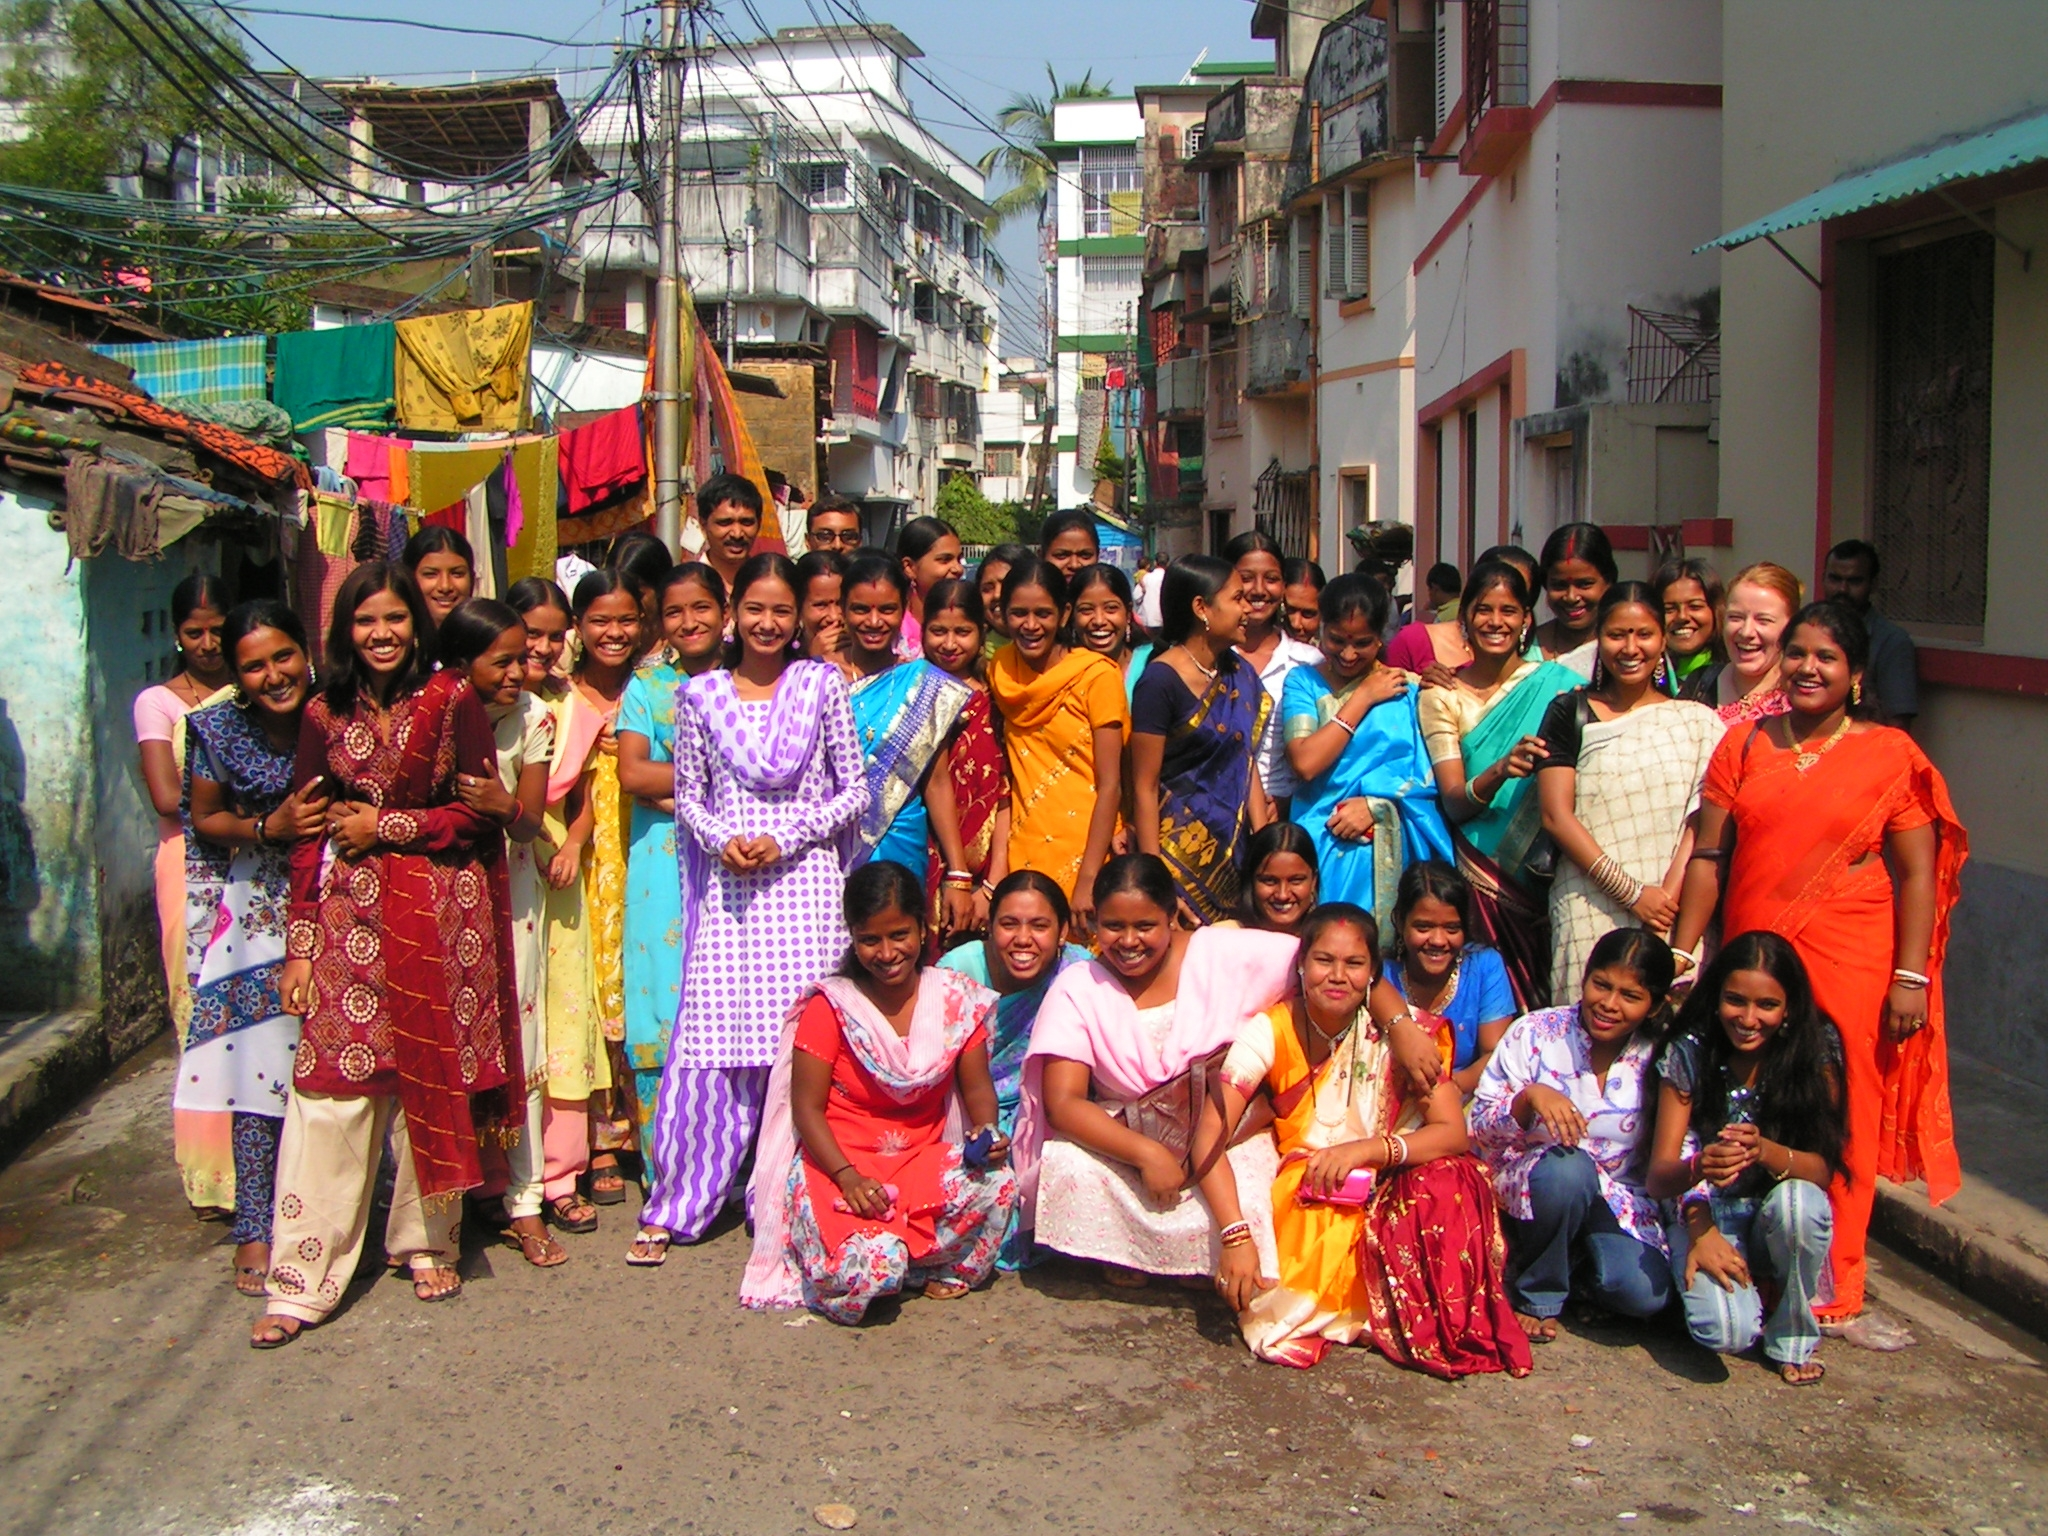 ConneXions in Kolkata, India, provides women the ability to earn a fair wage with dignity, keeping them from a life of prostitution.